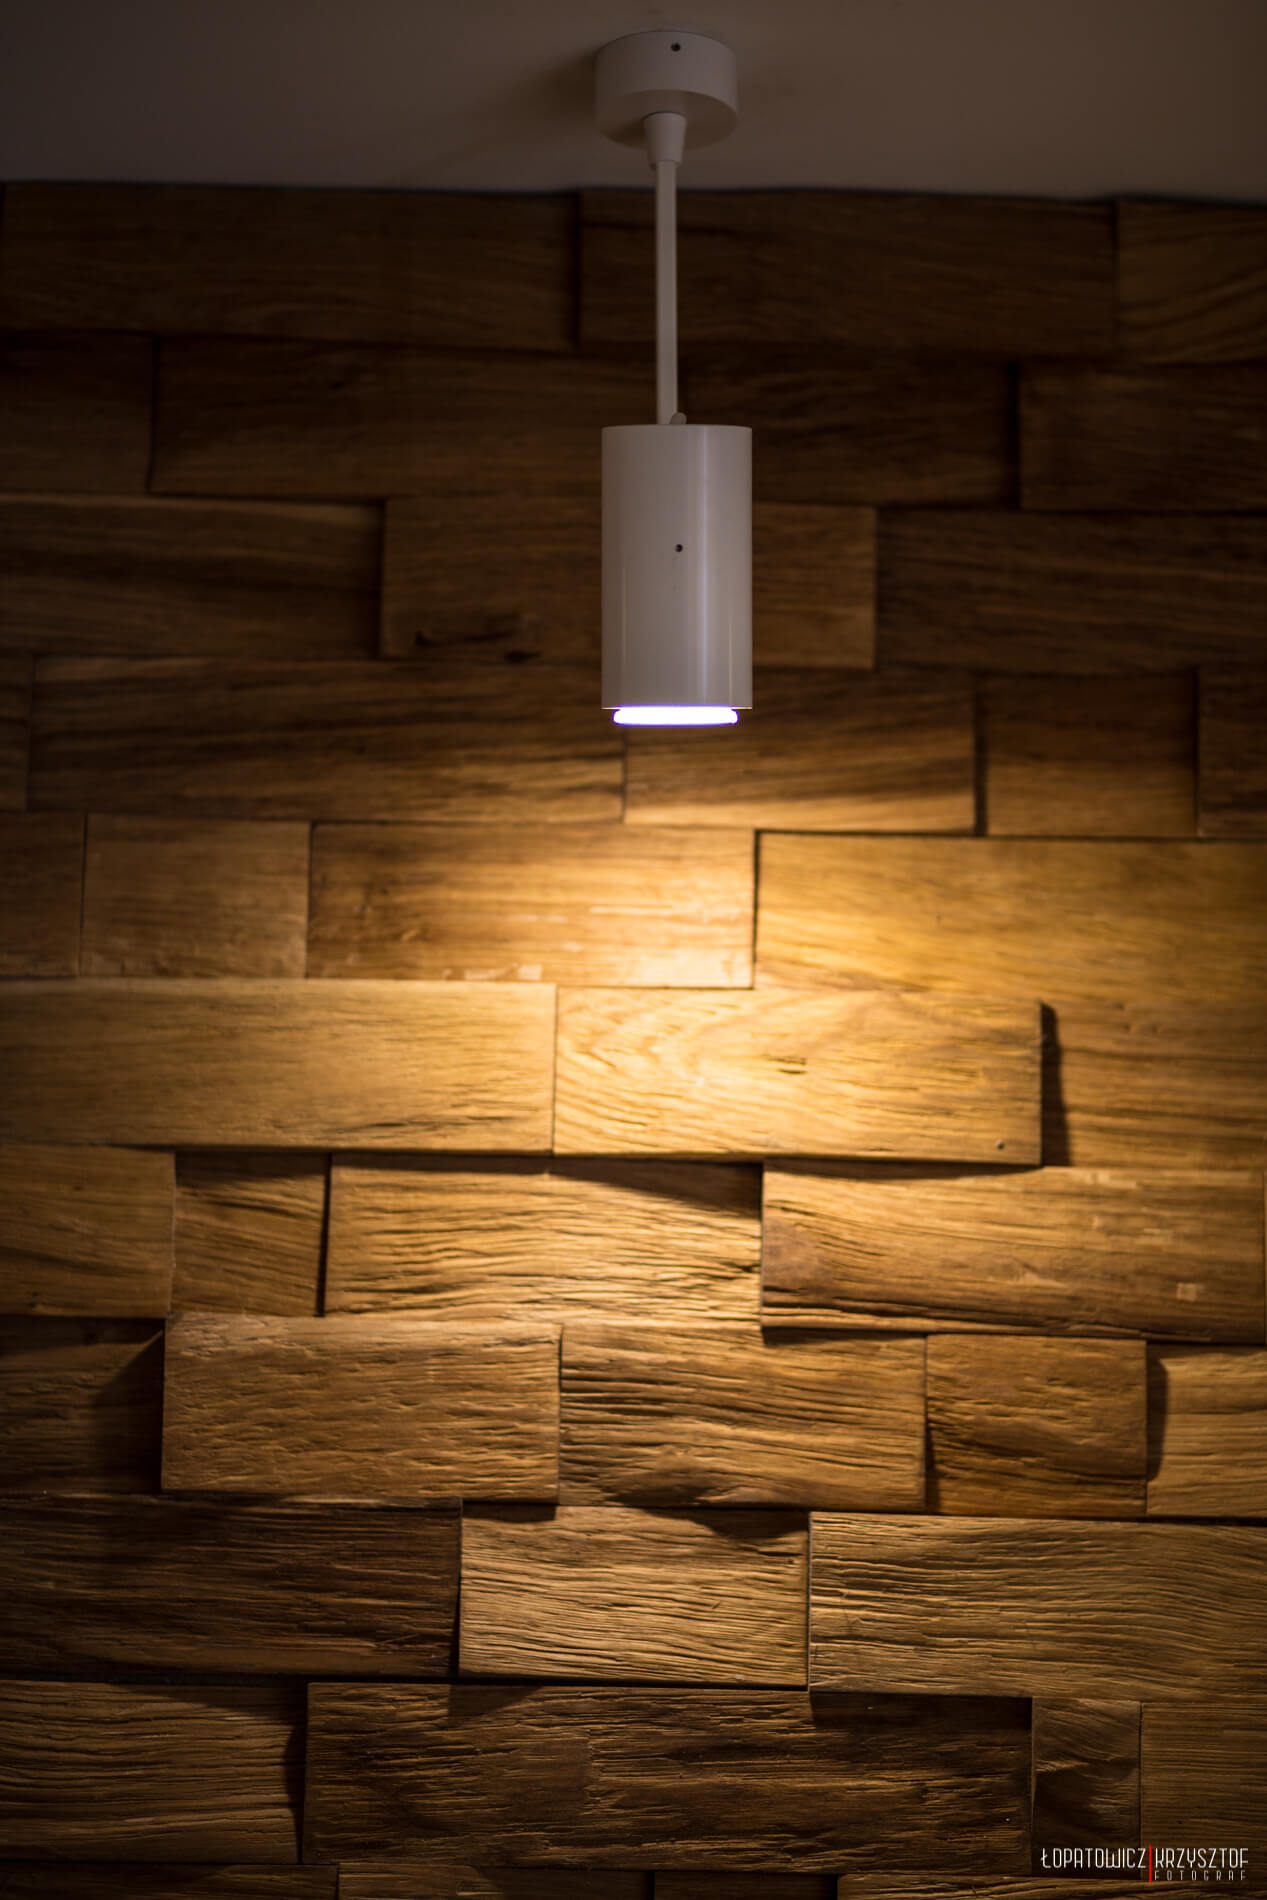 One of the ceiling-mounted focused lights is highlighted here, against the playful wood brick wall.